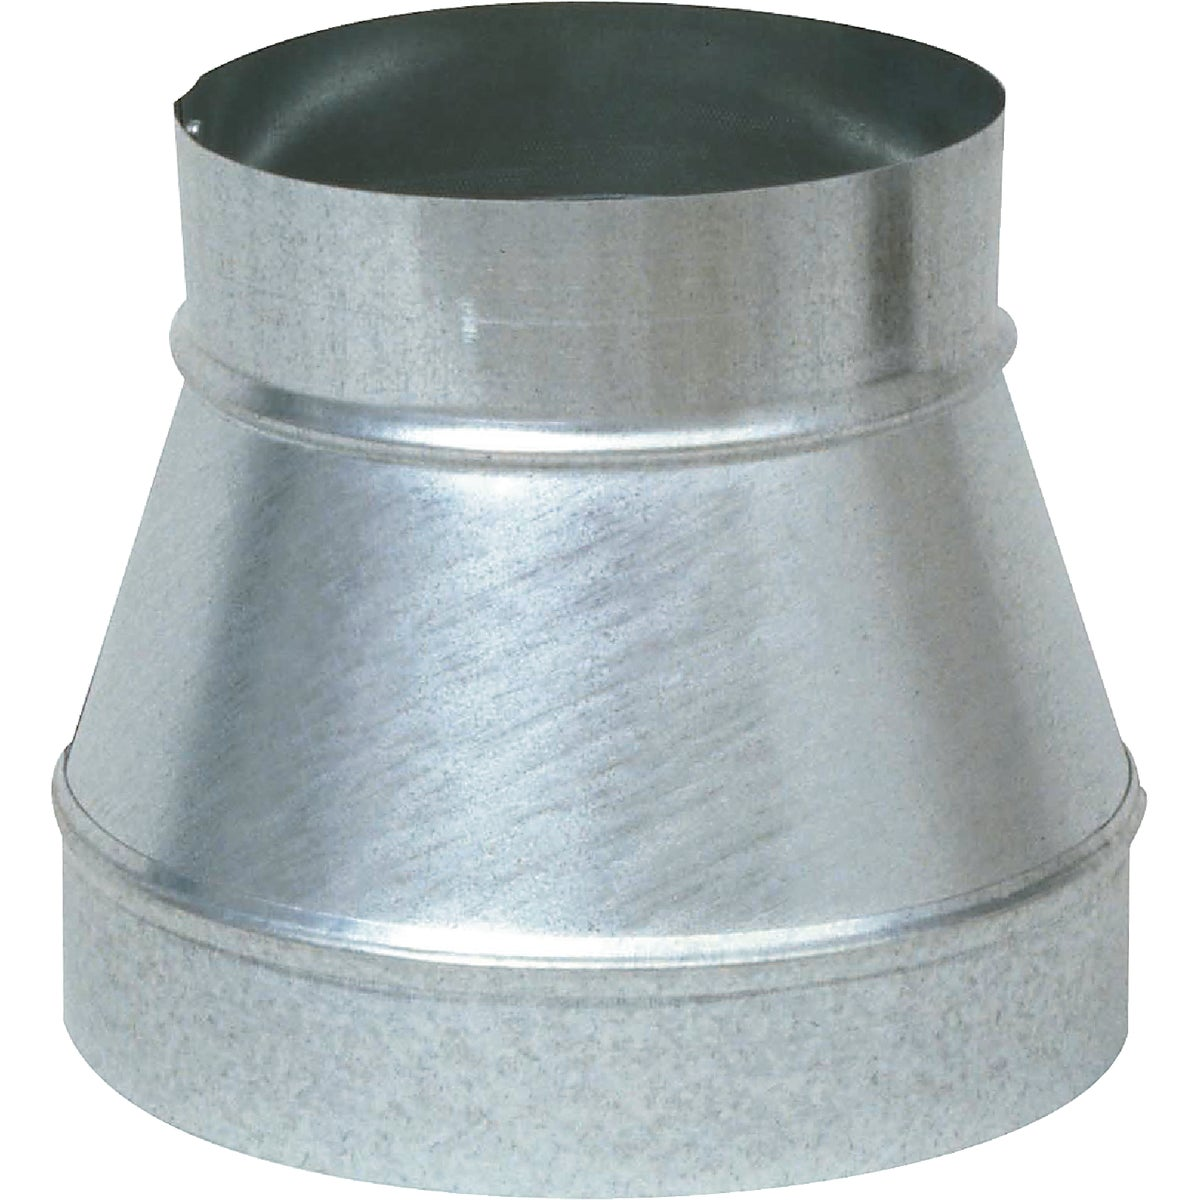 6-5 INCREASER/REDUCER - GV0784-A by Imperial Mfg Group